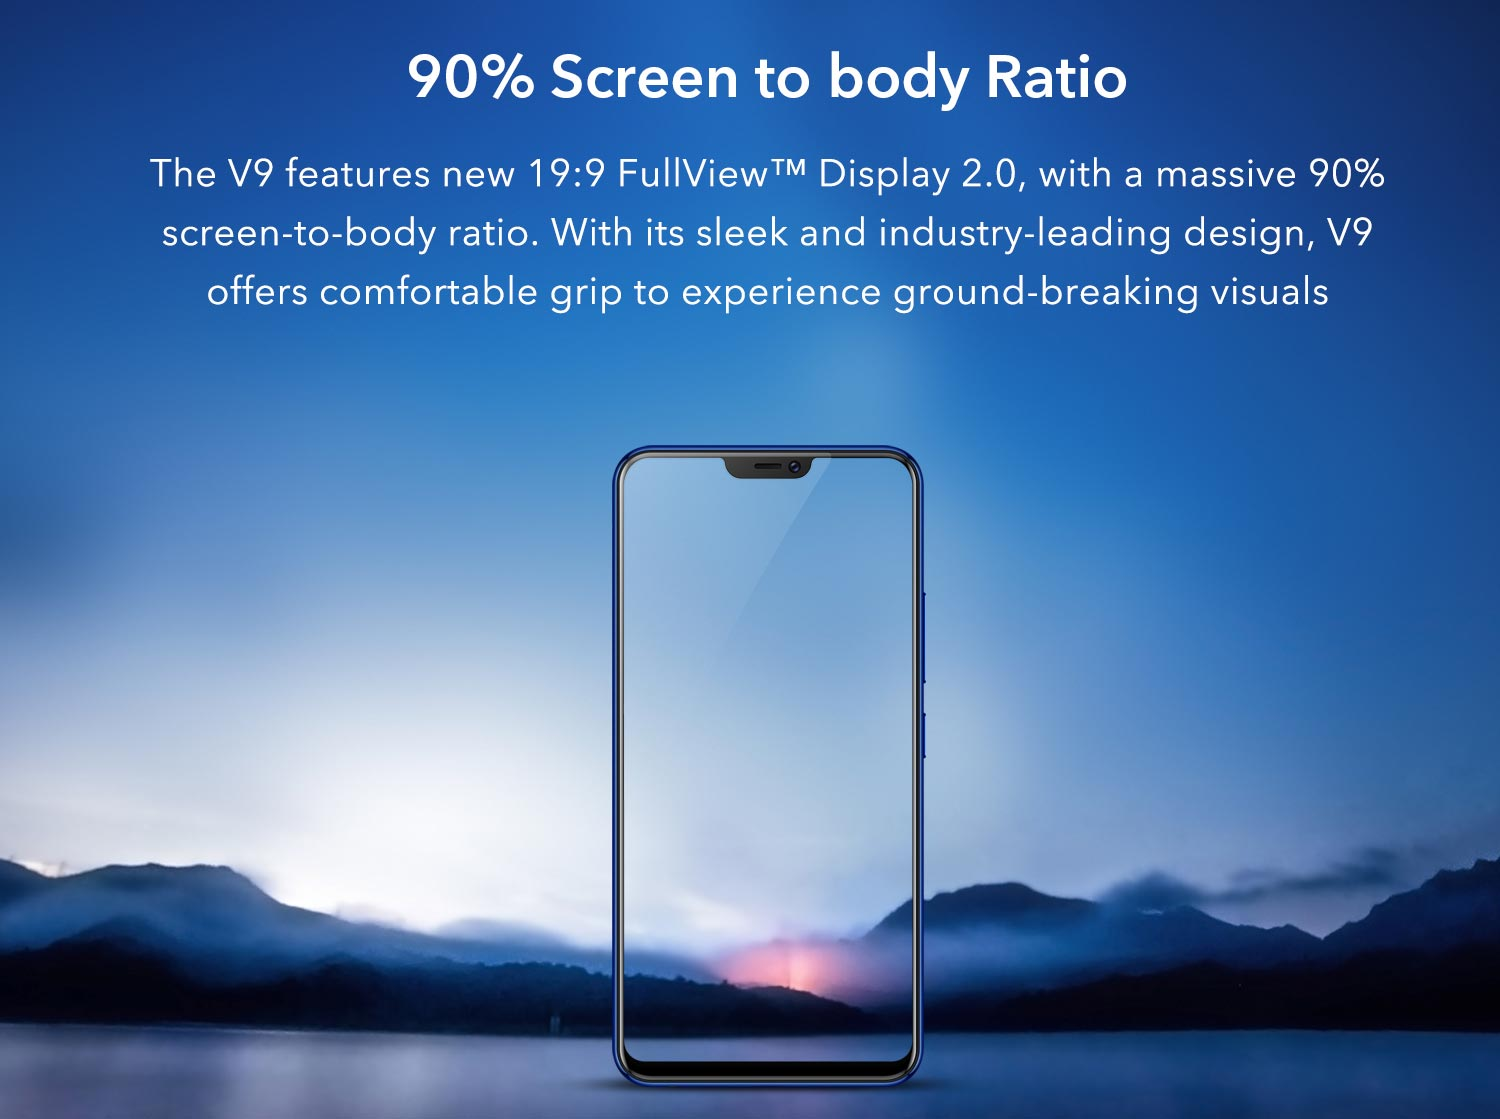 90% screen to body ratio